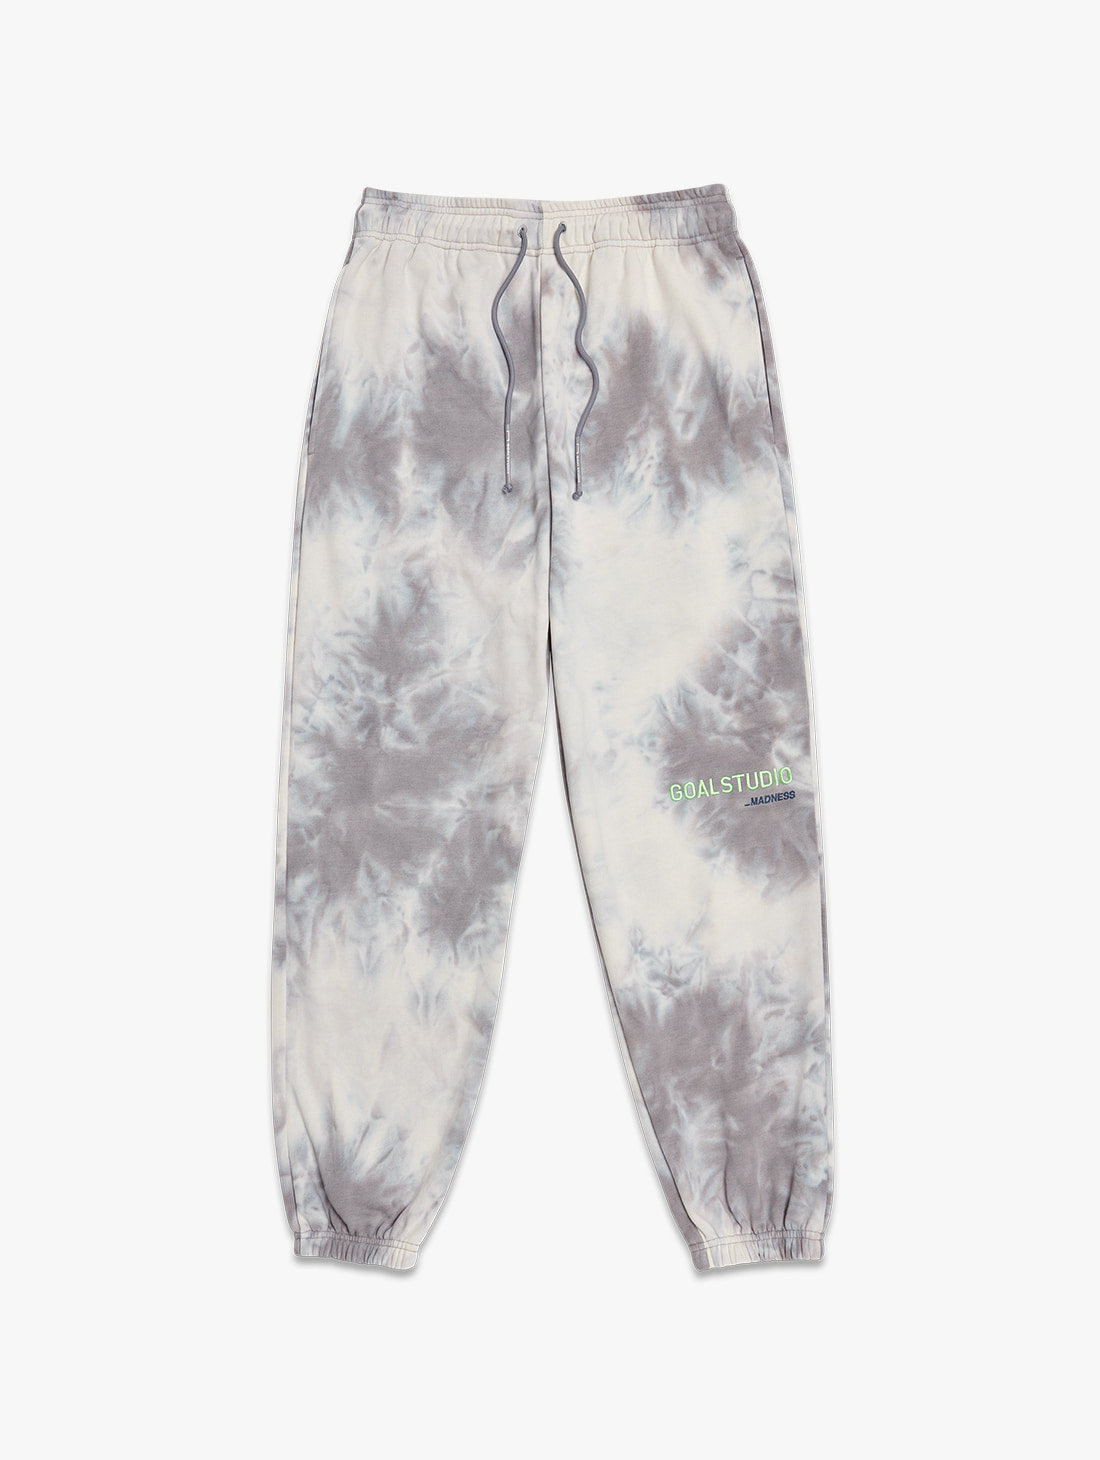 TIE DYE JOGGER PANTS (2 Colors)